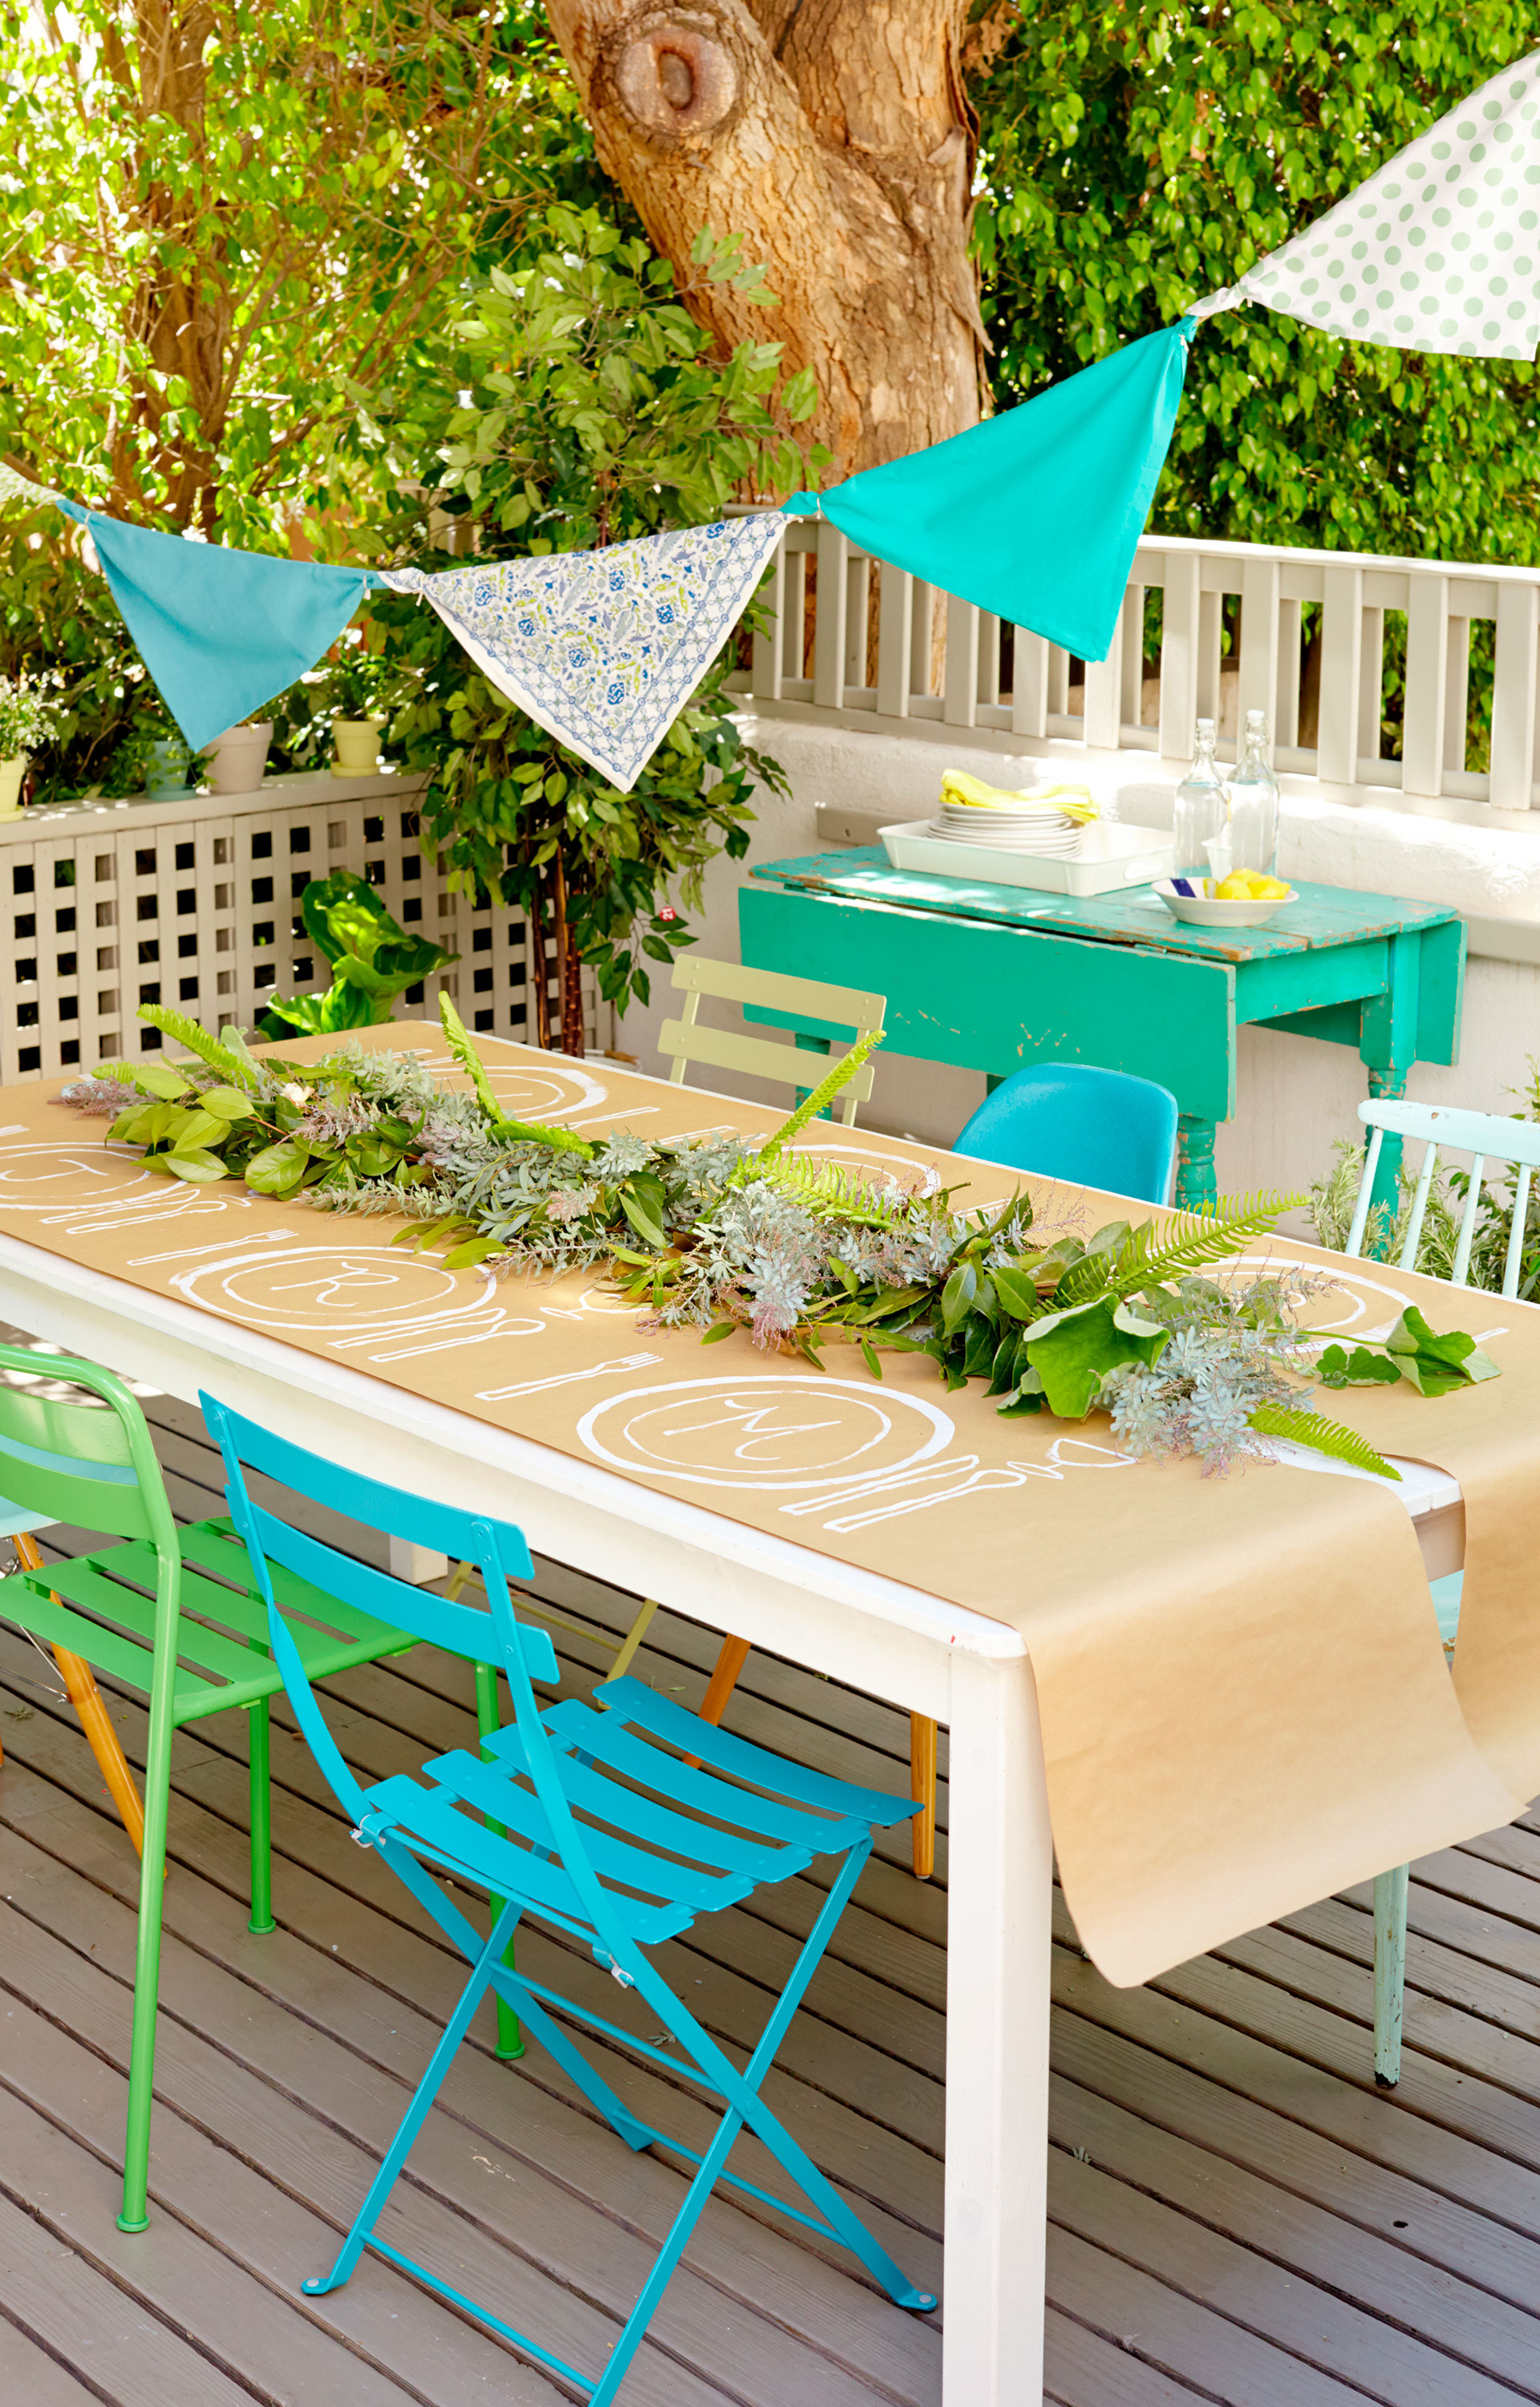 Backyard Party Ideas And Decor - Summer Entertaining Ideas